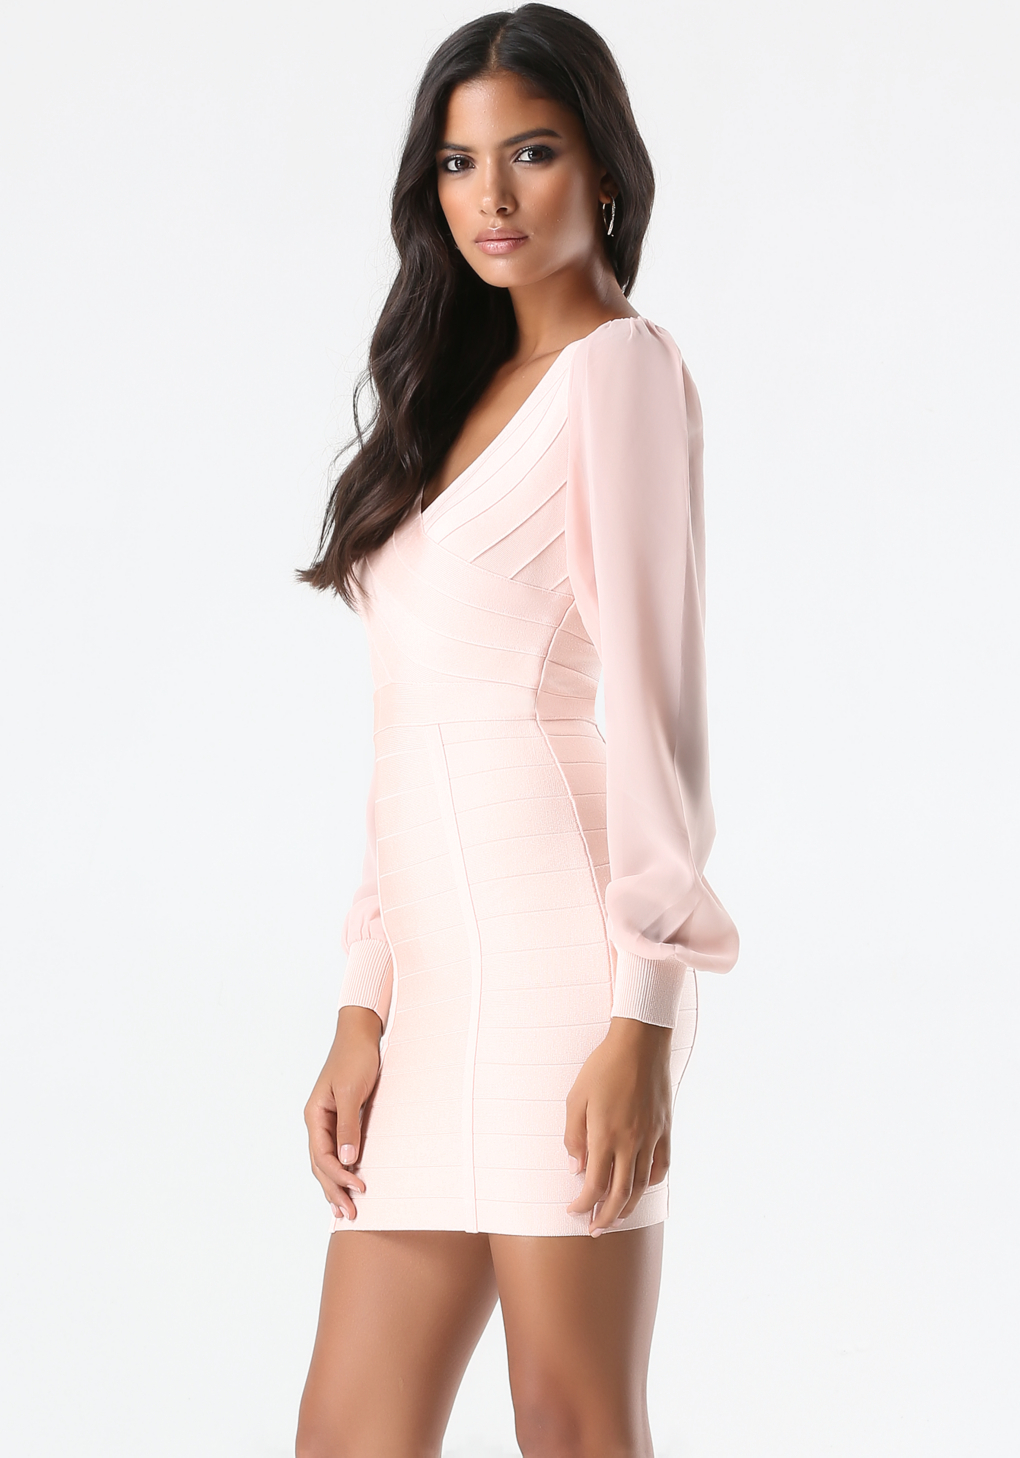 River Island Pink Bandage Dress